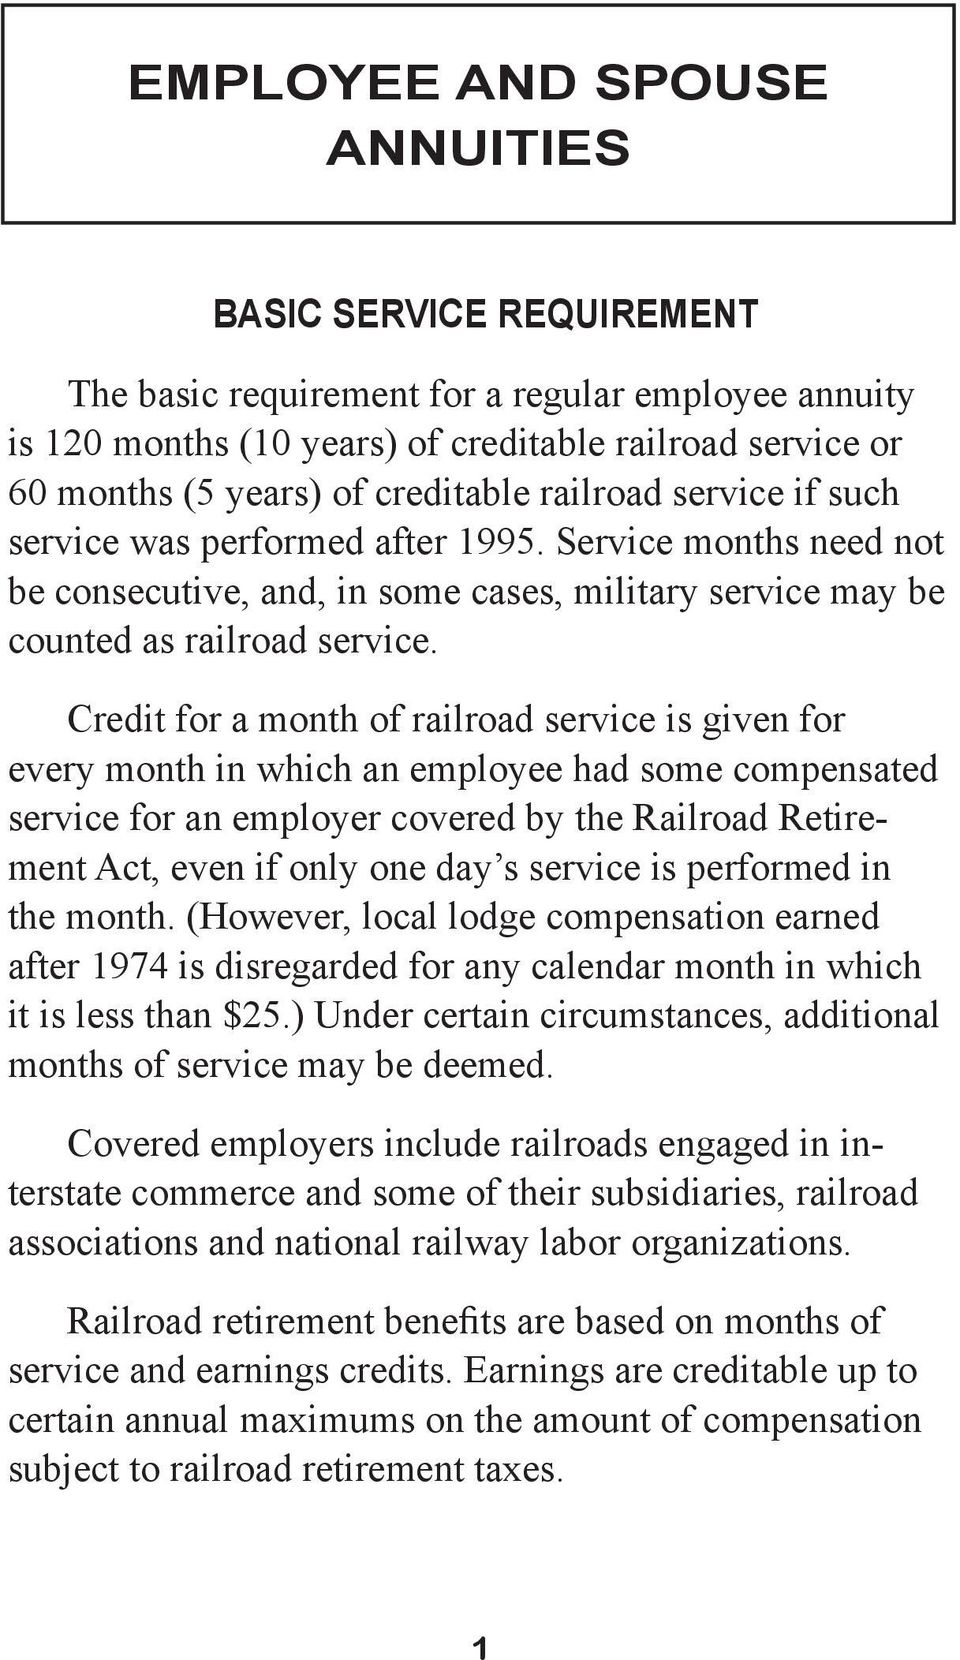 Credit for a month of railroad service is given for every month in which an employee had some compensated service for an employer covered by the Railroad Retirement Act, even if only one day s